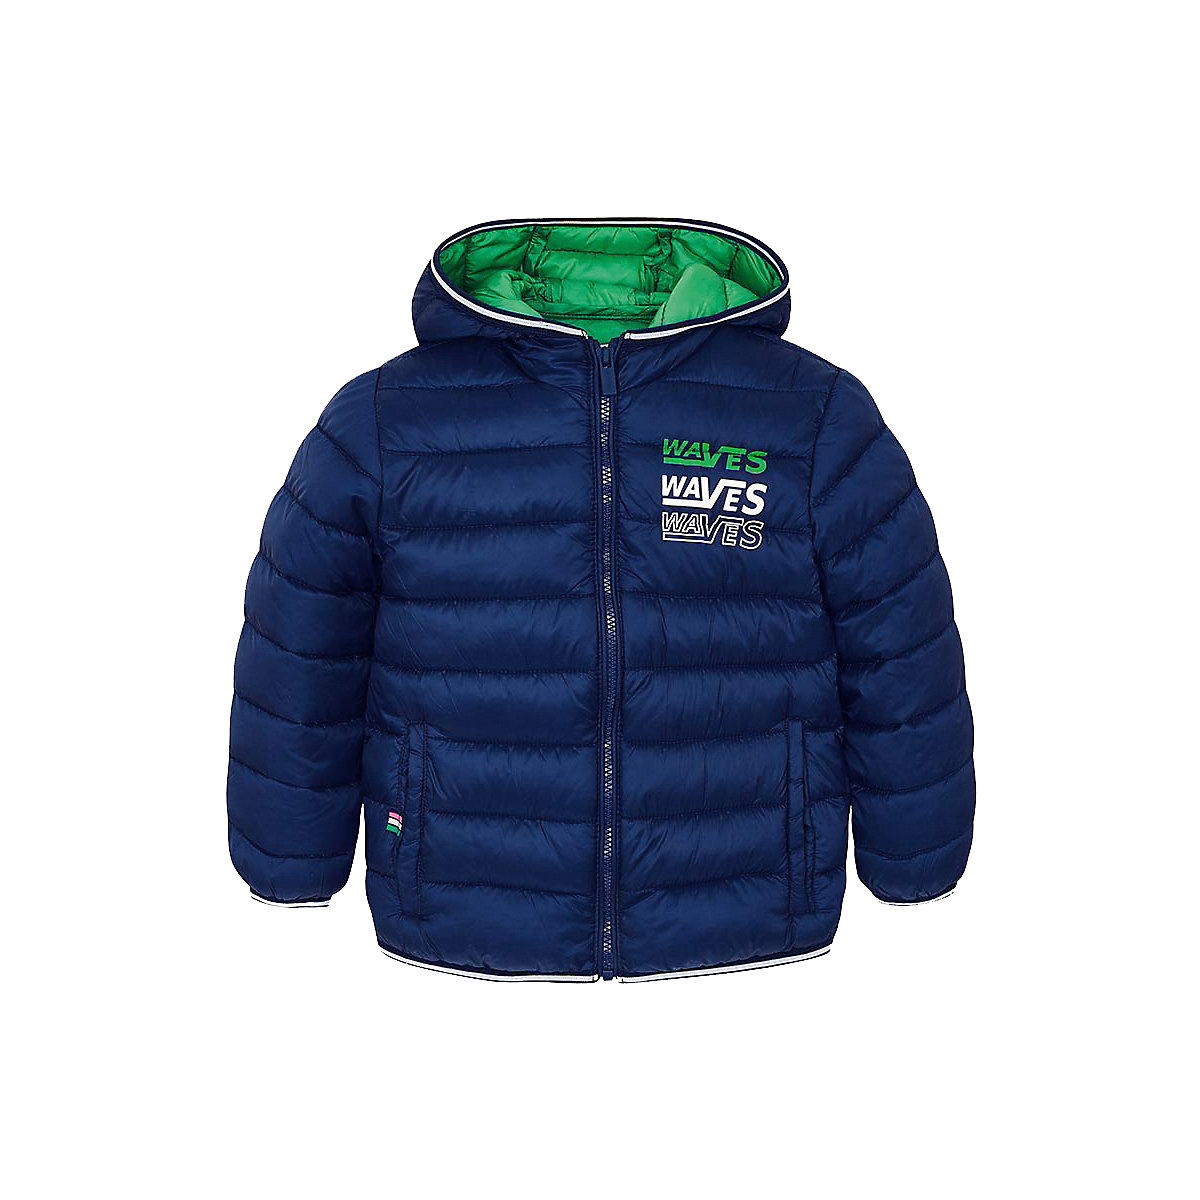 Фото - Mayoral Jackets & Coats 10685119 jacket for boys coat baby clothes children clothing outwear boy reima jackets 8688821 for boys polyester winter fur clothes boy